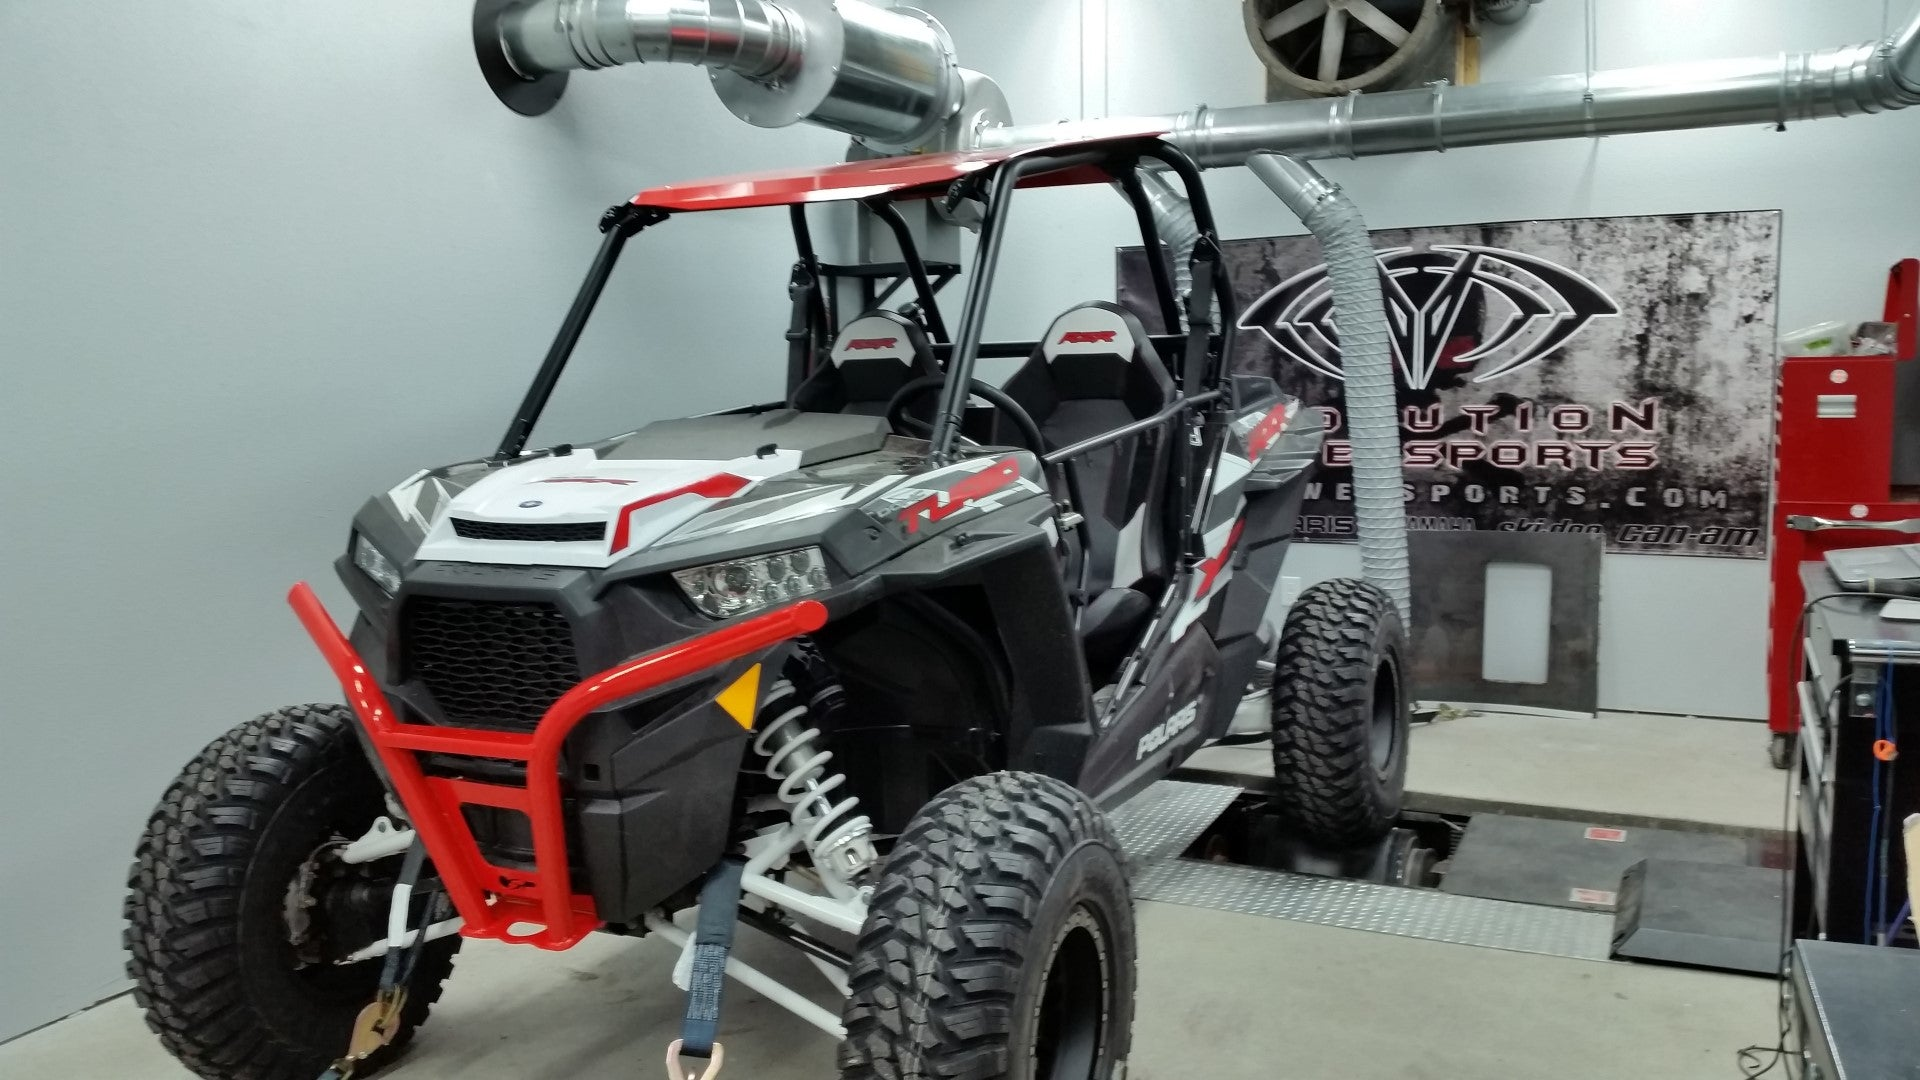 POLARIS XPRZR TURBO ON DYNO